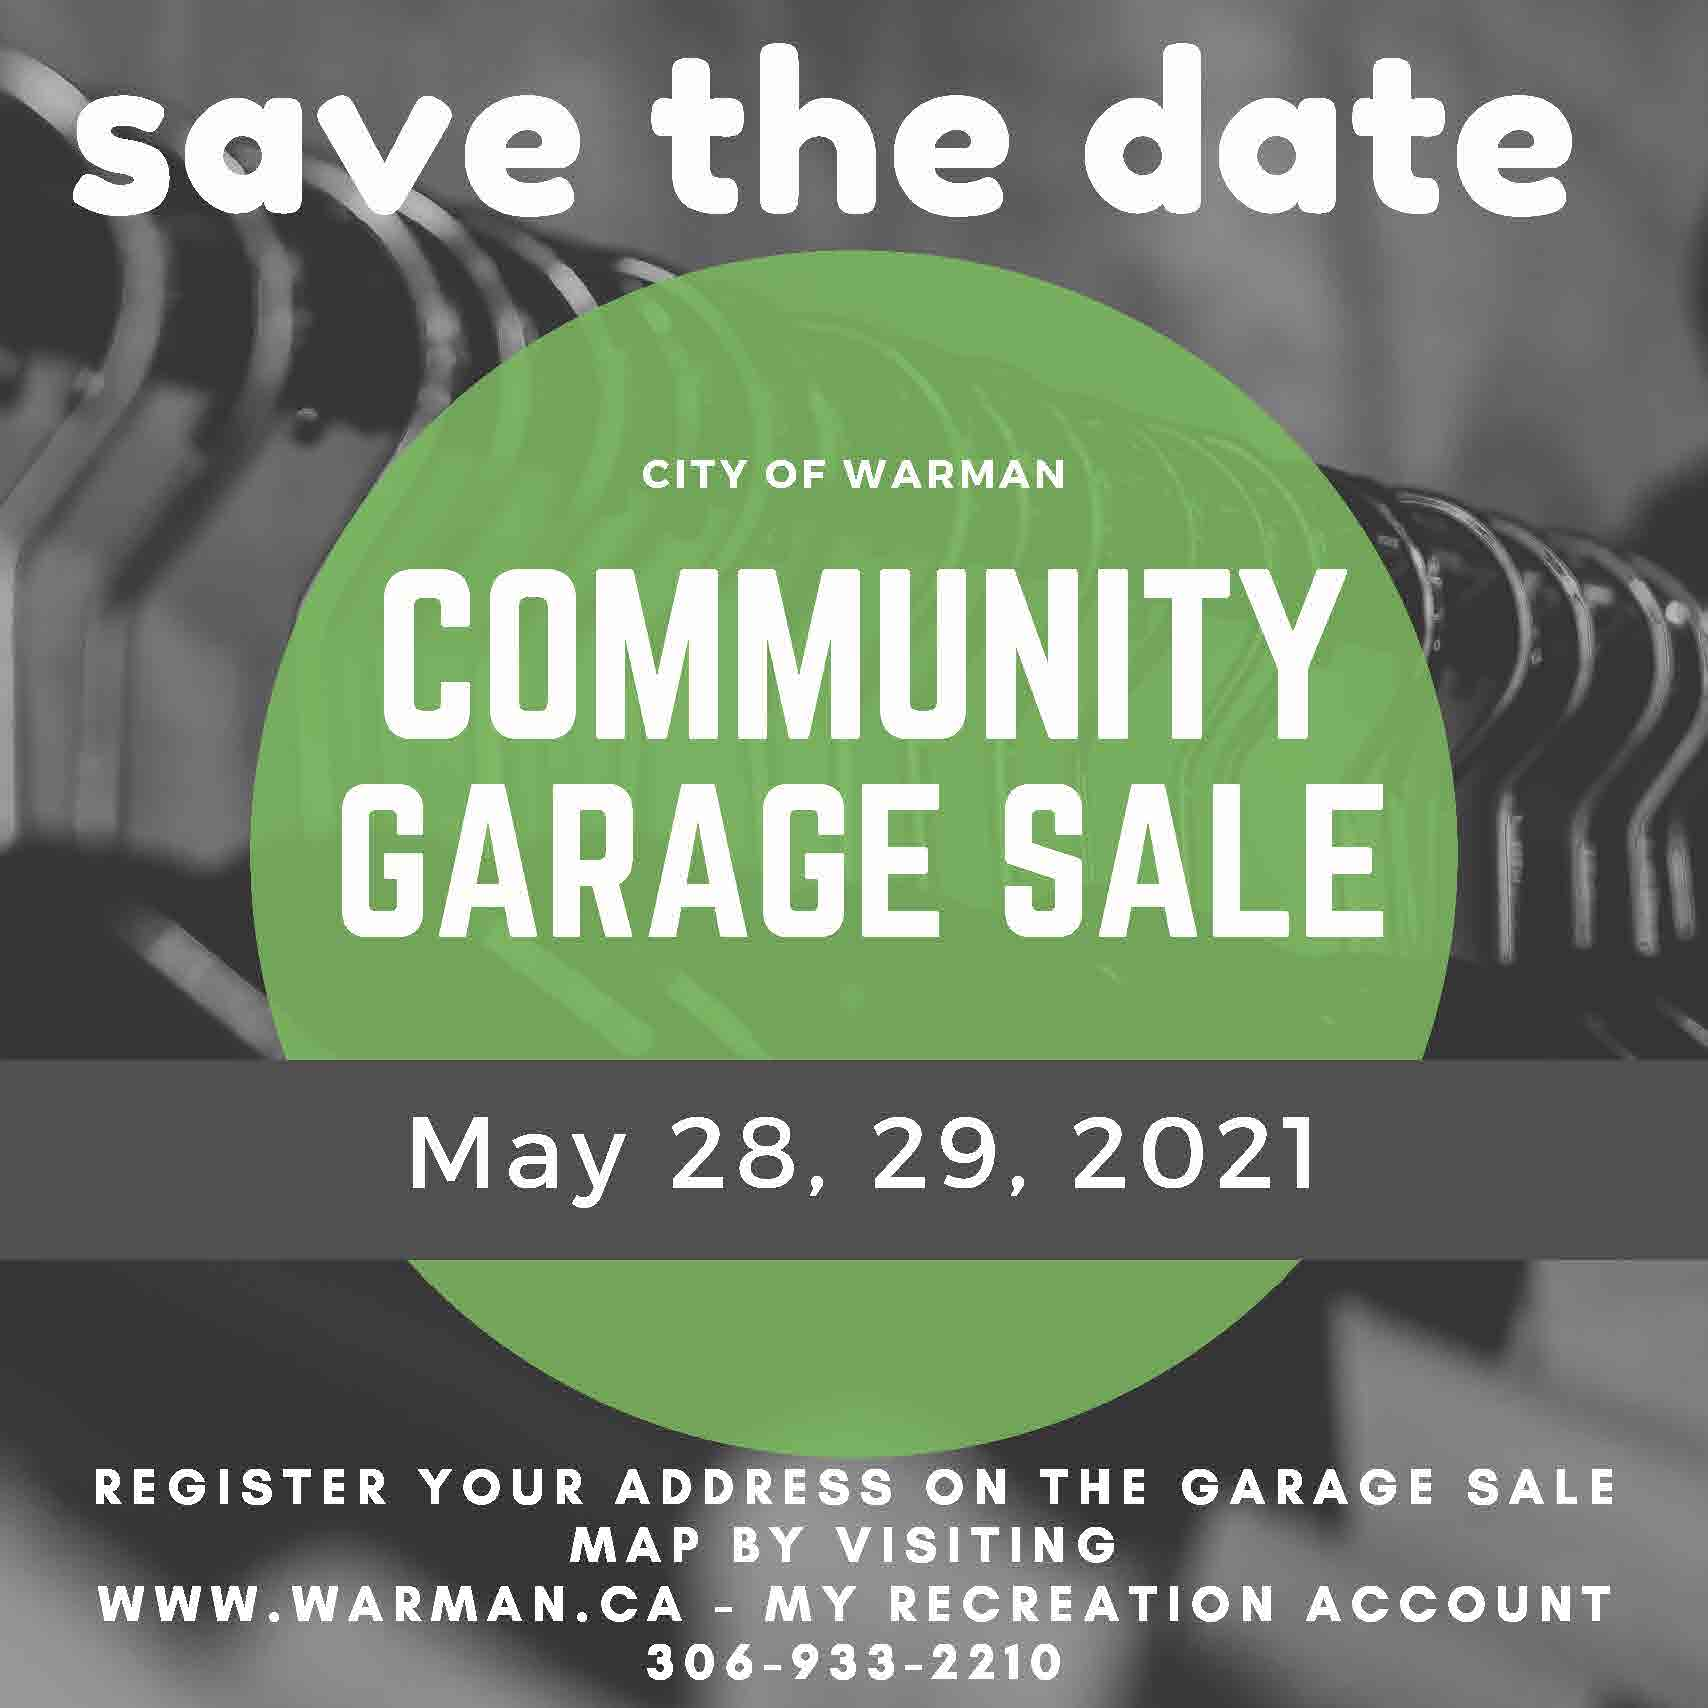 Garage Sale spring 2021 - save the date